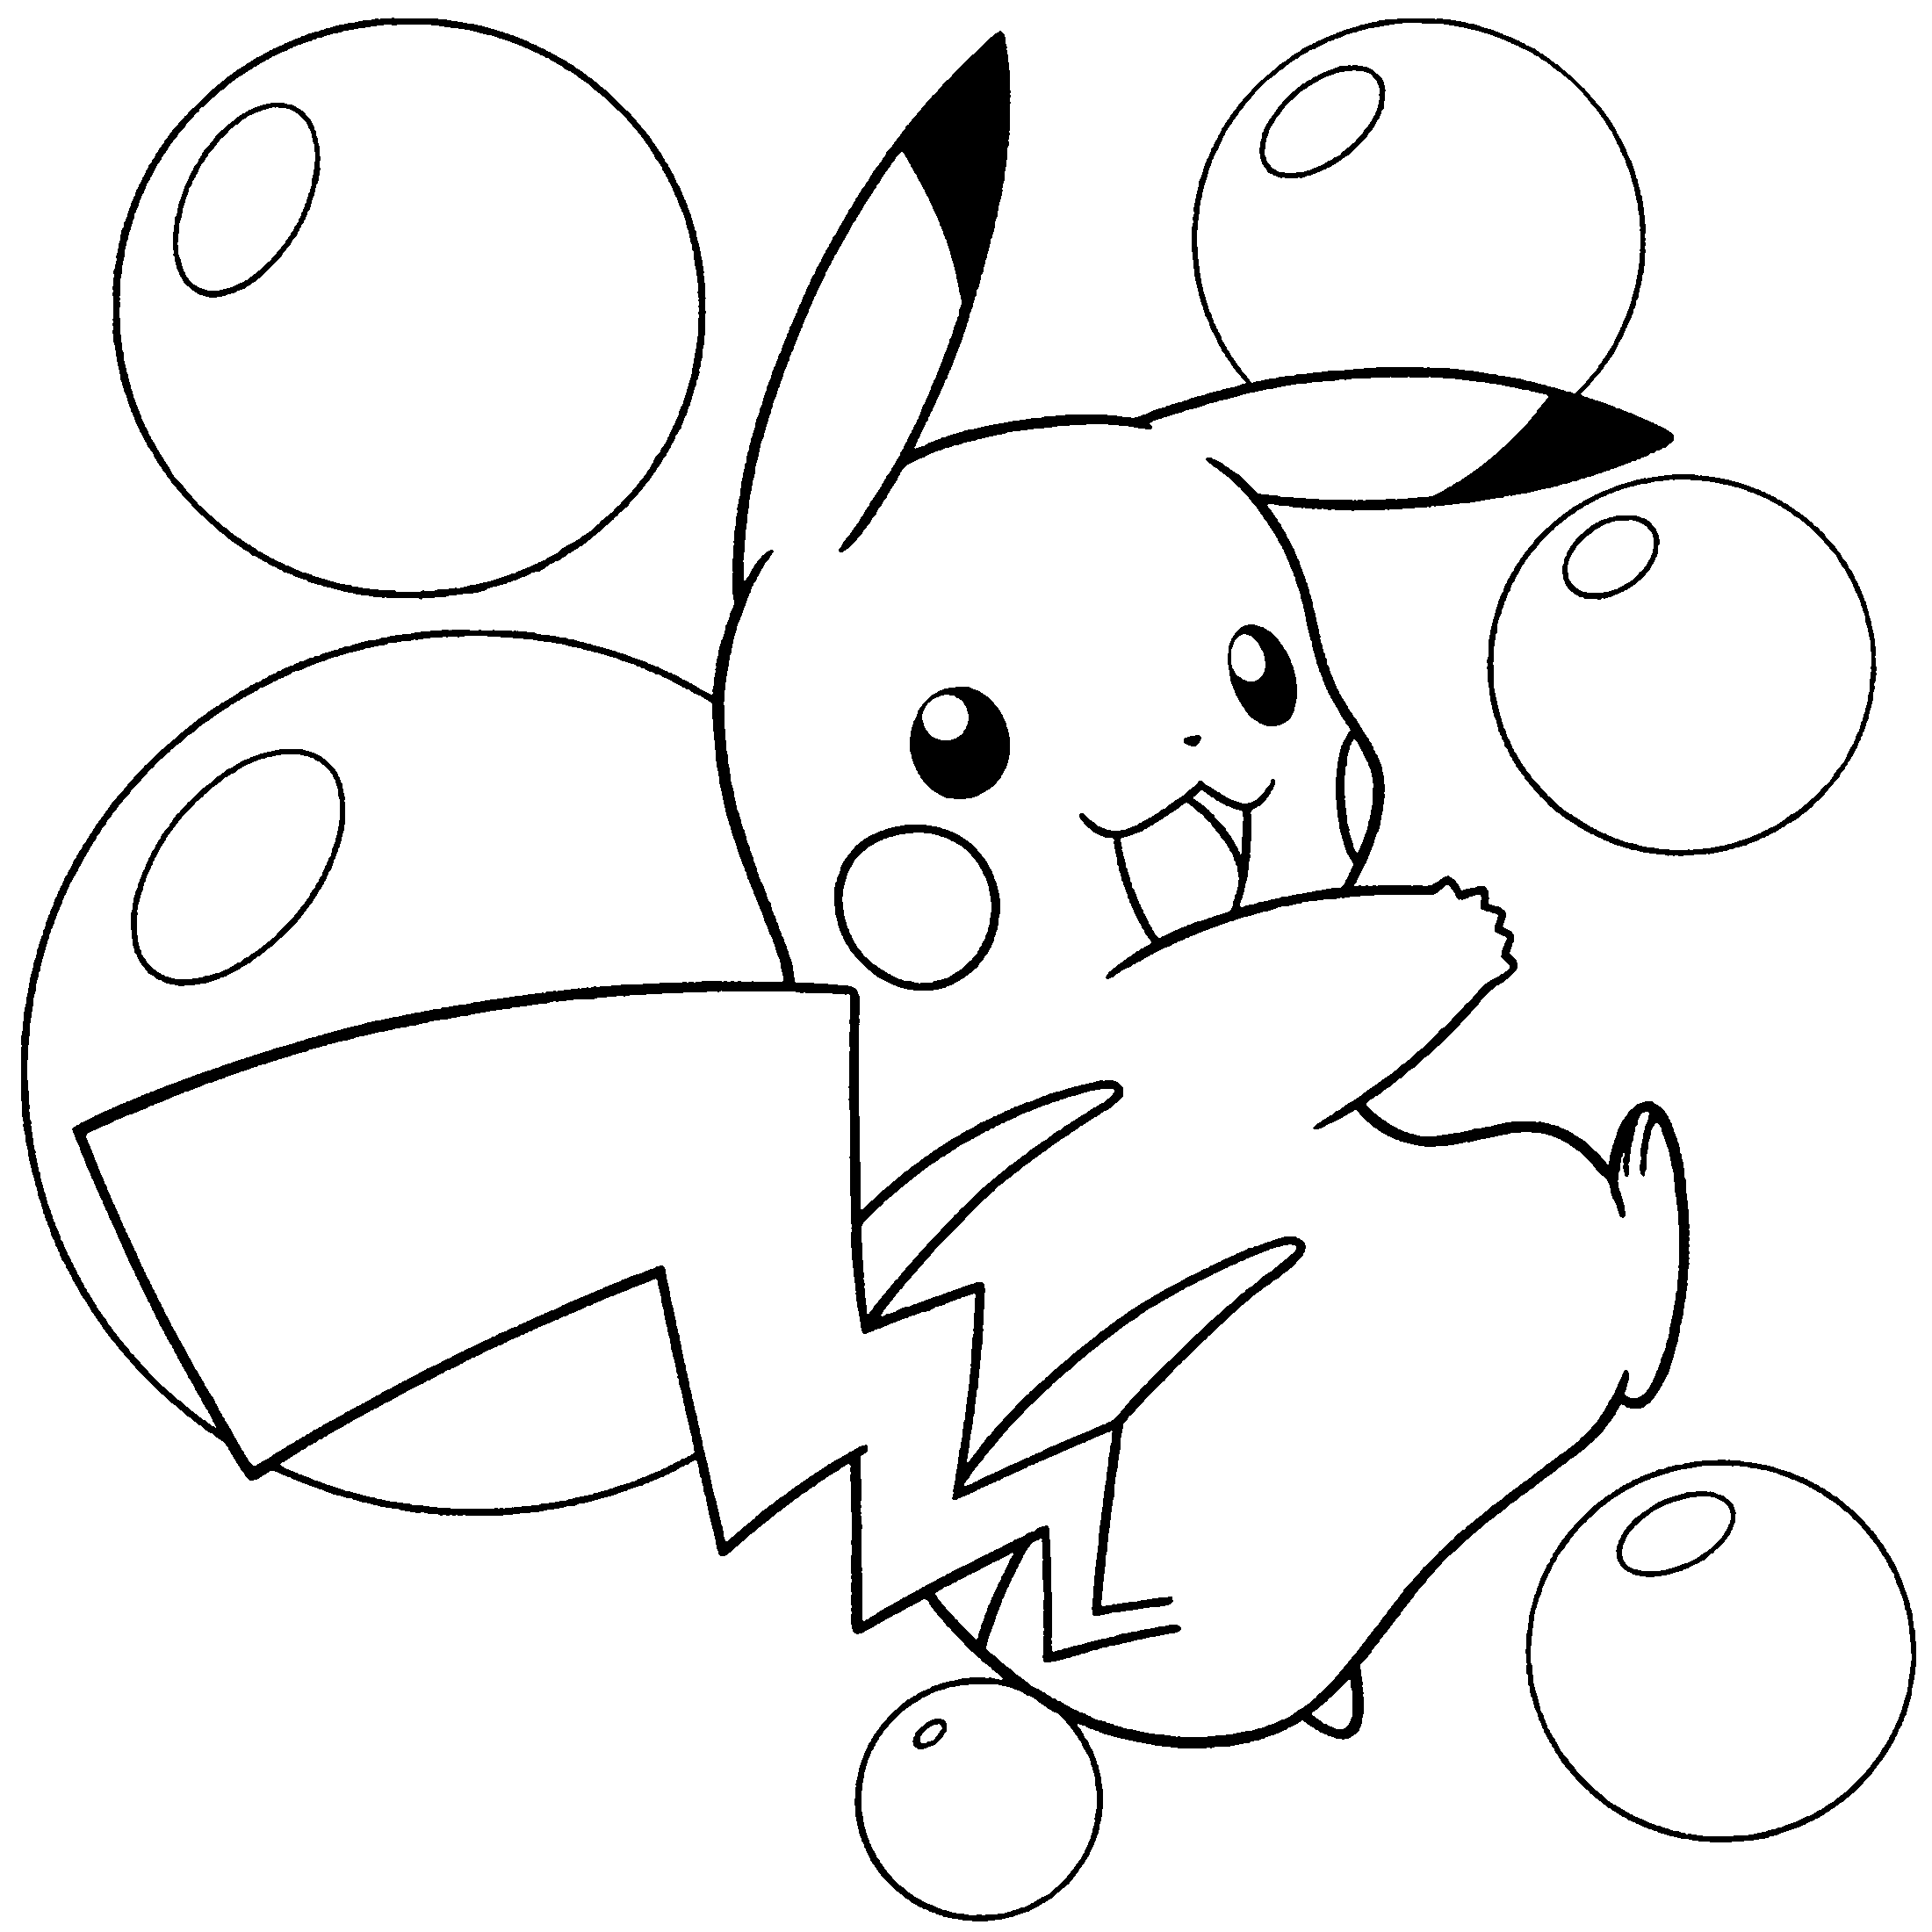 Pokemon Coloring Pages (1) - Coloring Kids